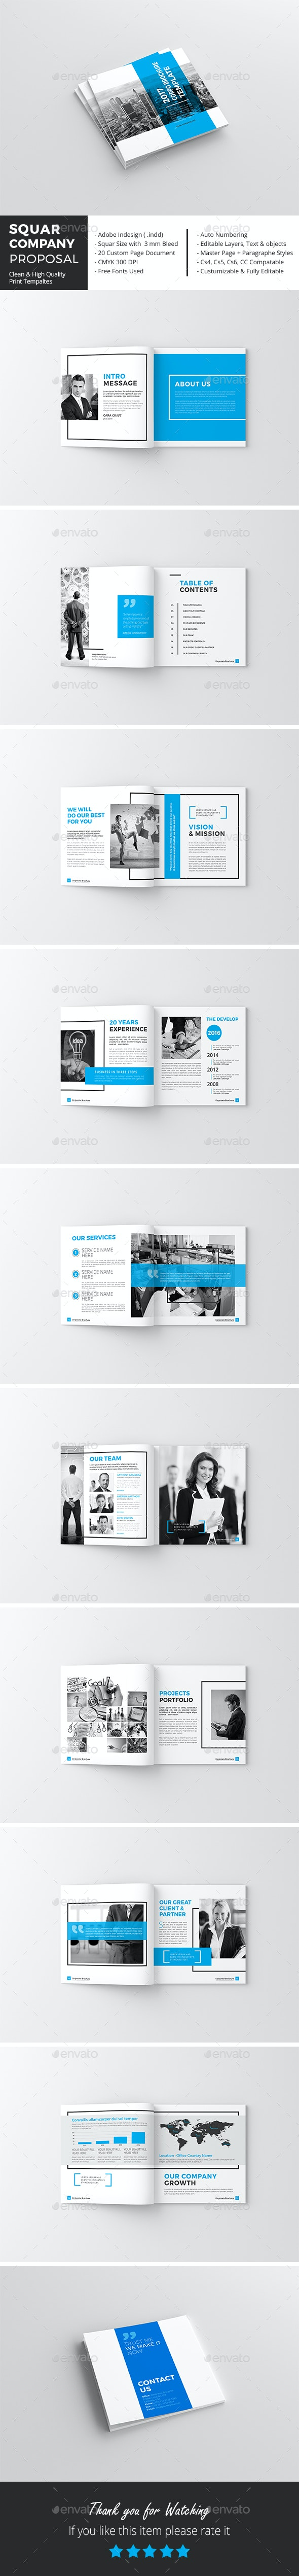 Squar Company Proposal Template - Corporate Brochures